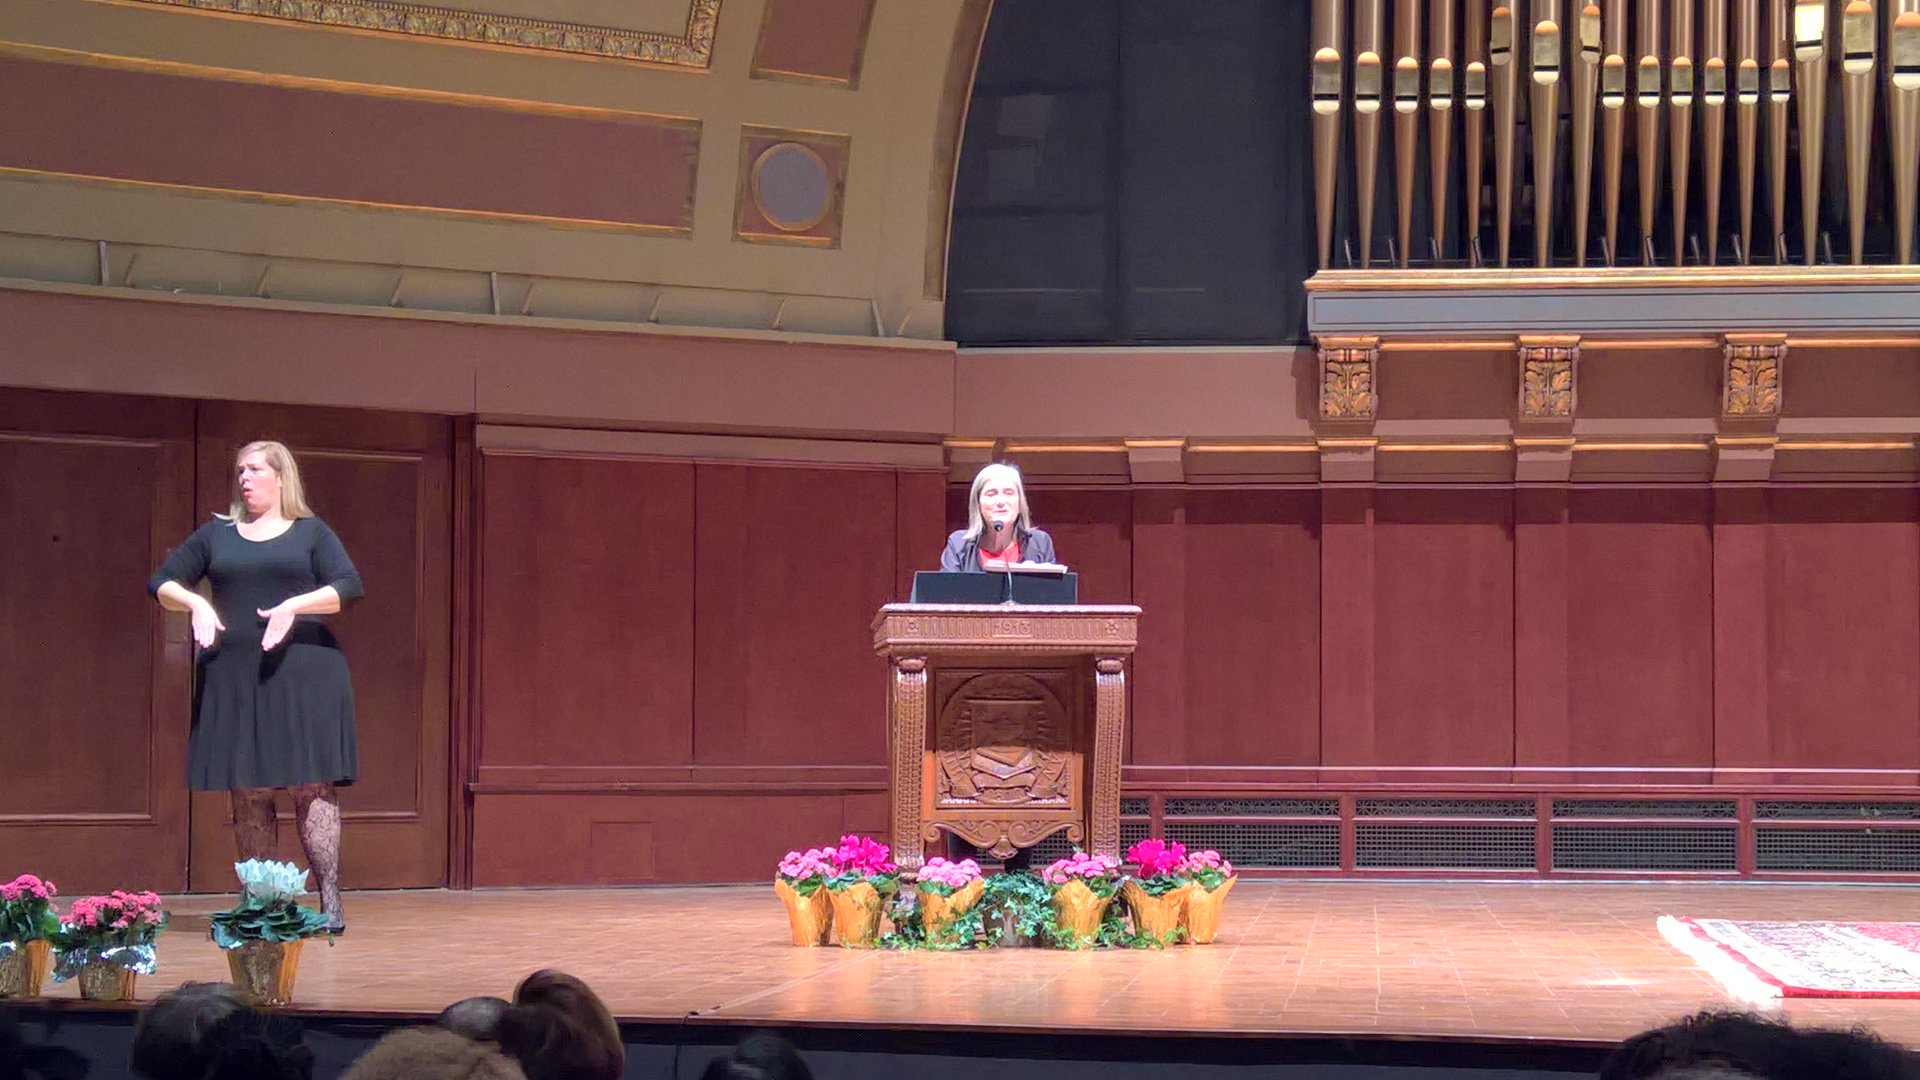 Amy Goodman shares her opening remarks #UMichMLKDay2017 #umichtalks https://t.co/v1HQWZovPw